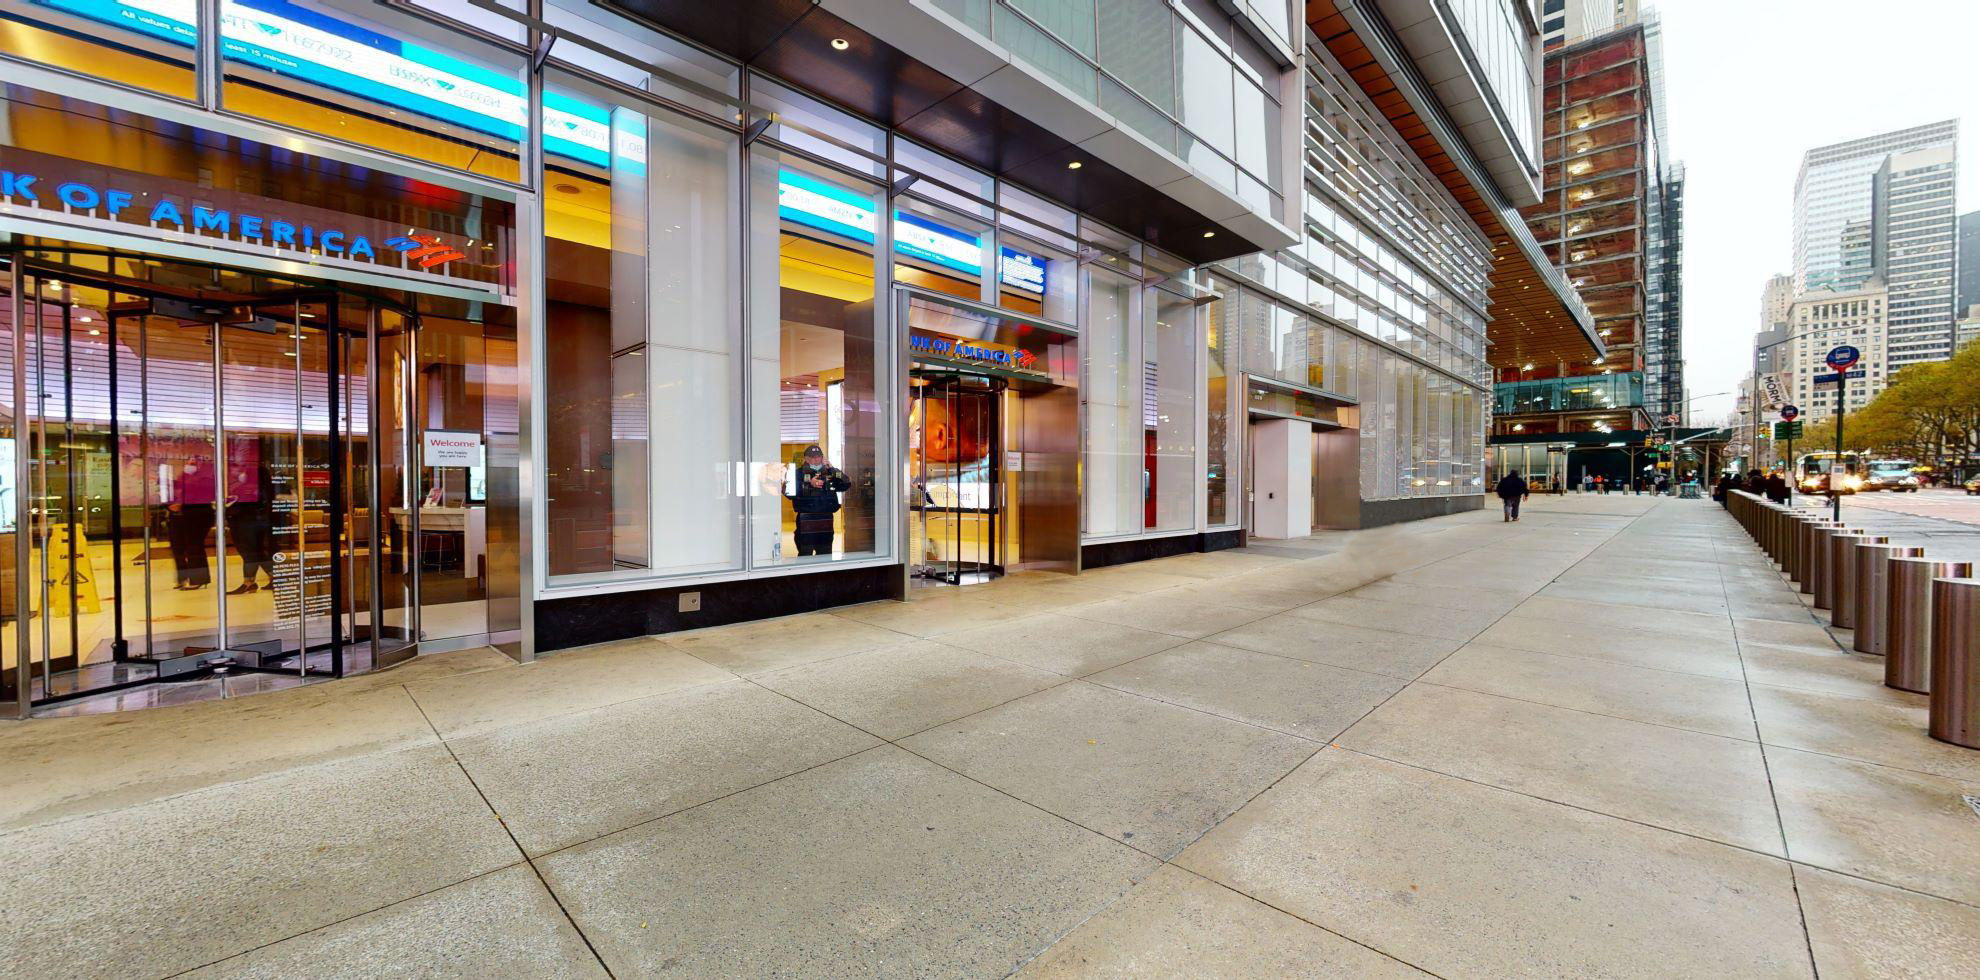 Bank of America financial center with walk-up ATM | 115 W 42nd St, New York, NY 10036